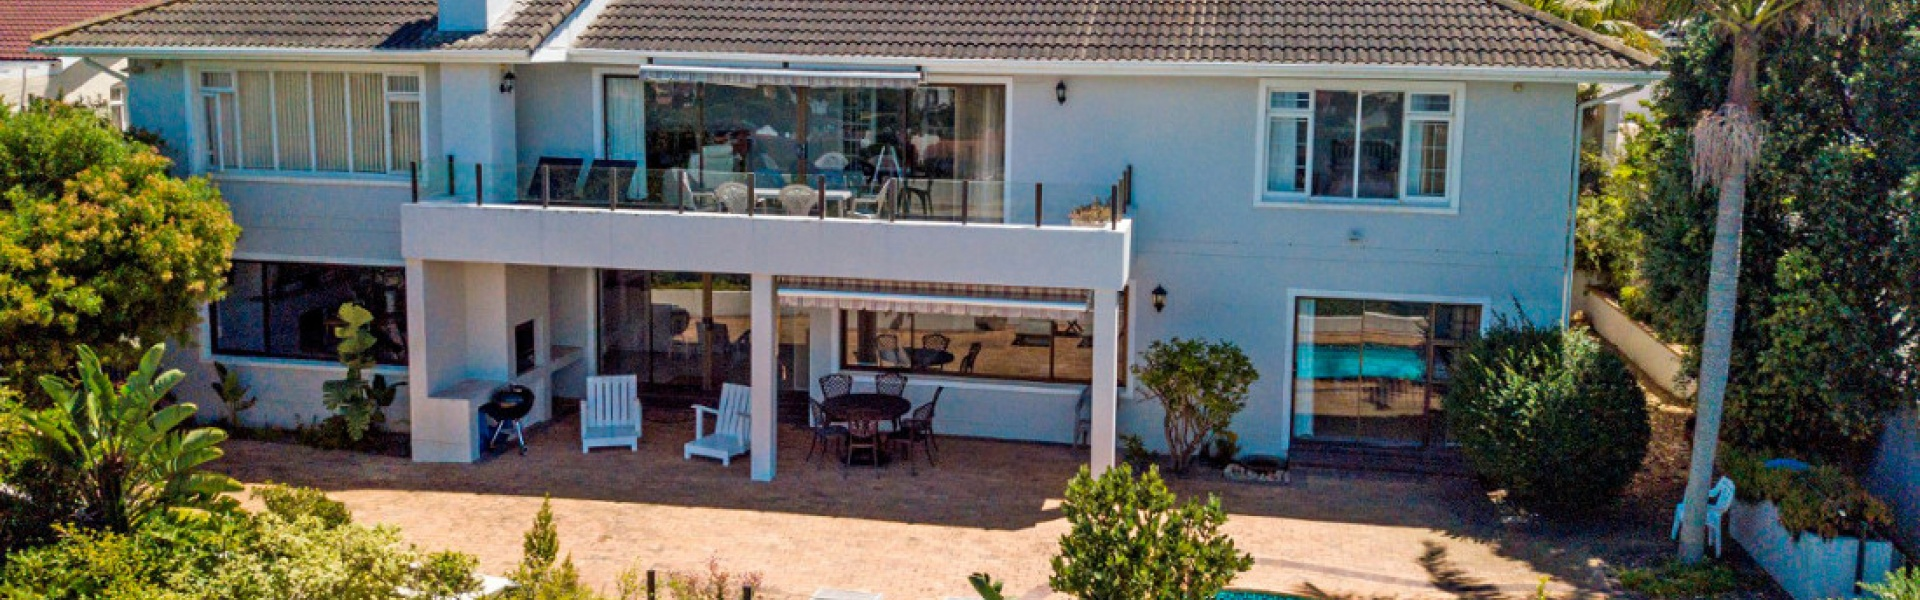 Plettenberg Bay, 6600, 4 Bedrooms Bedrooms, ,4 BathroomsBathrooms,Villa,For Sale,1069